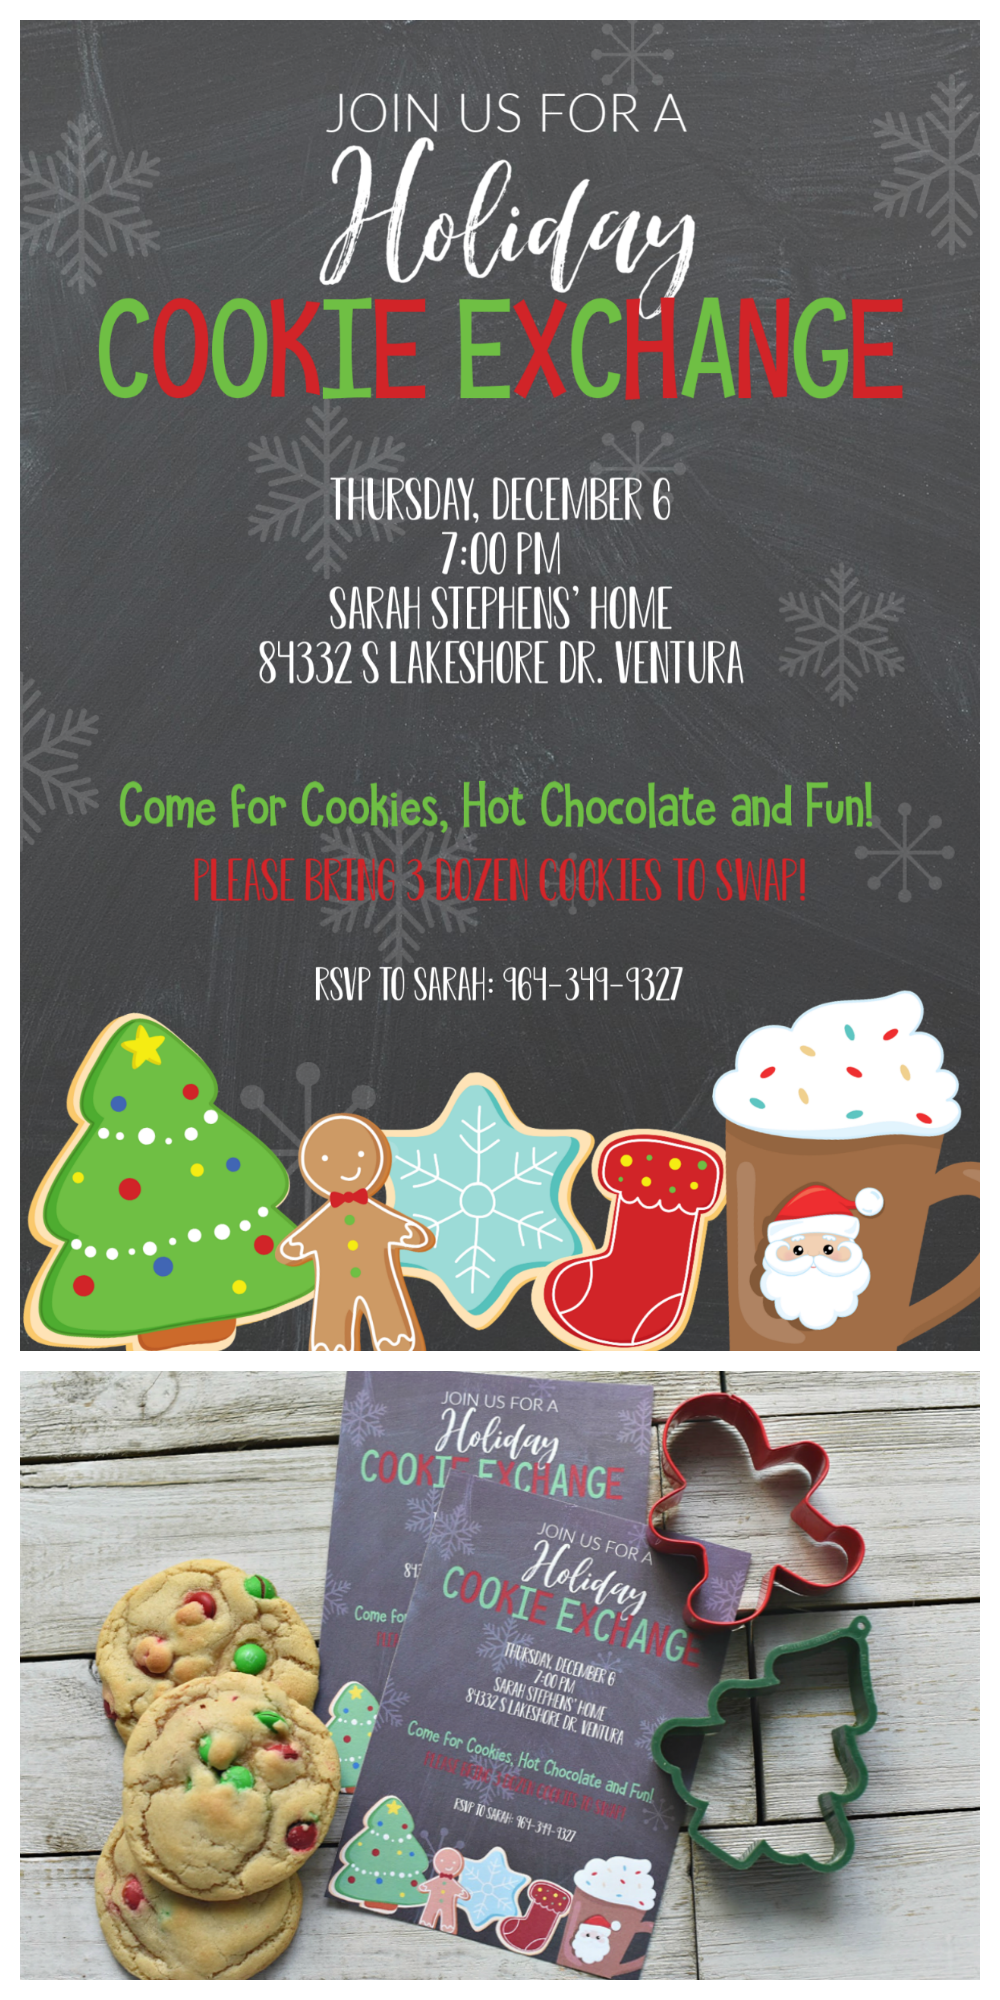 Christmas Cookie Exchange Invitations-Just customize and print these free invitations and recipe cards for your holiday cookie swap. #cookieswap